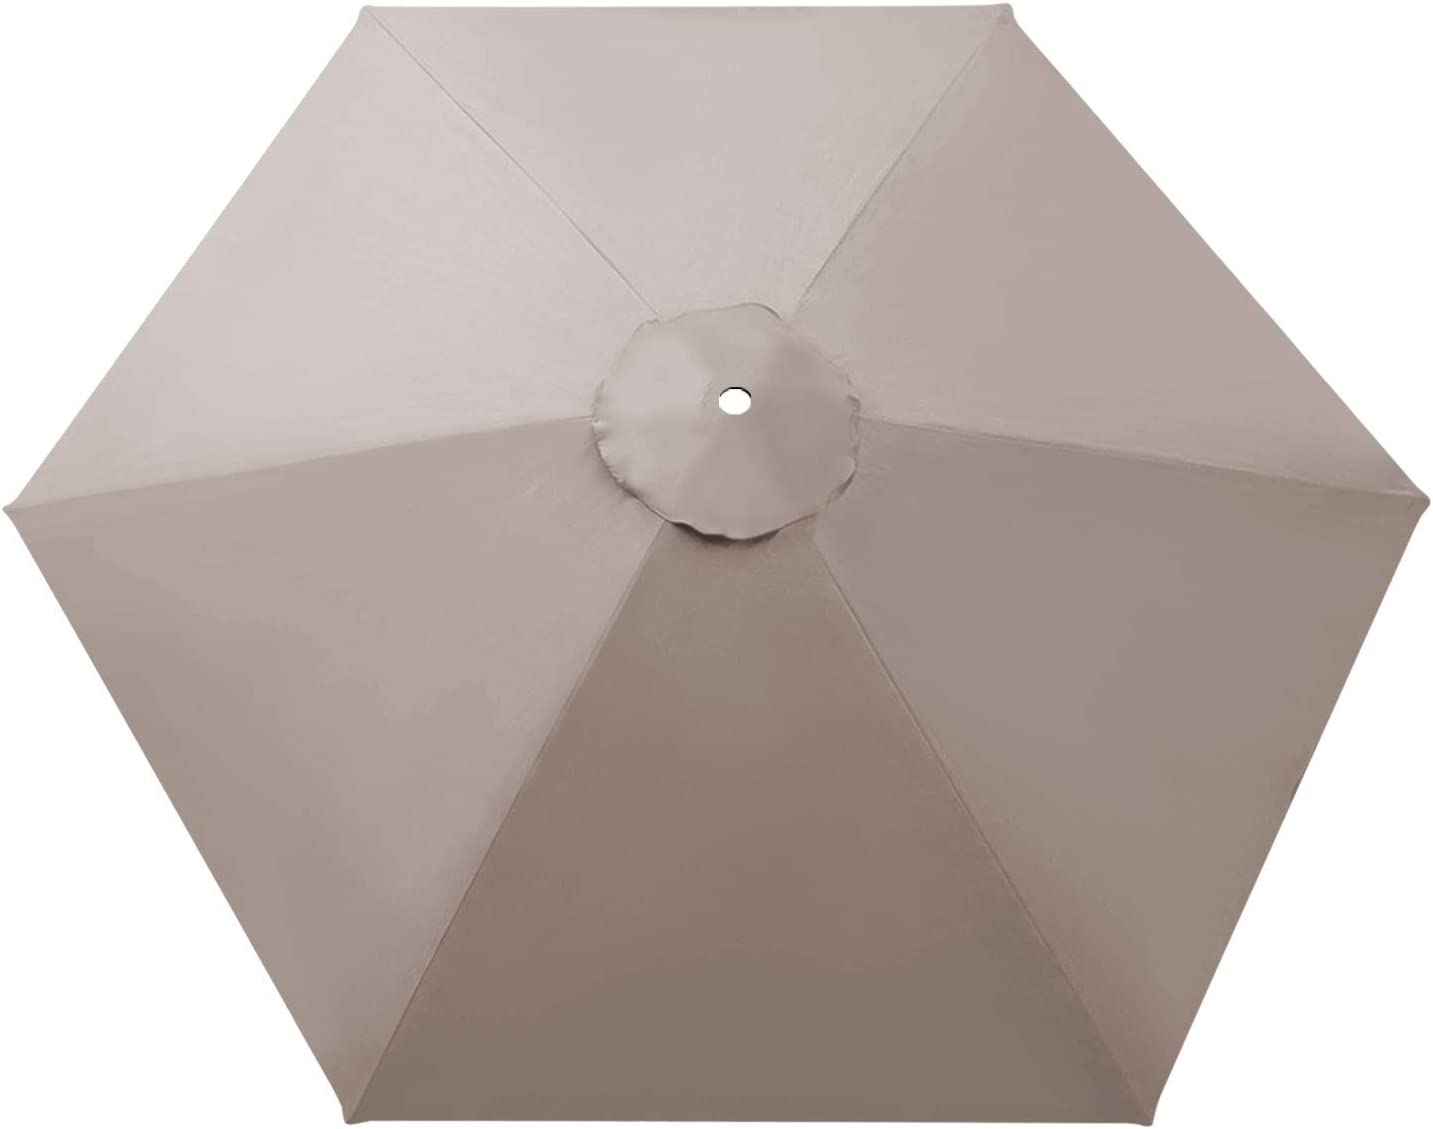 BenefitUSA Umbrella Cover Canopy 9ft 8 Rib Patio Replacement Top Outdoor-Taupe